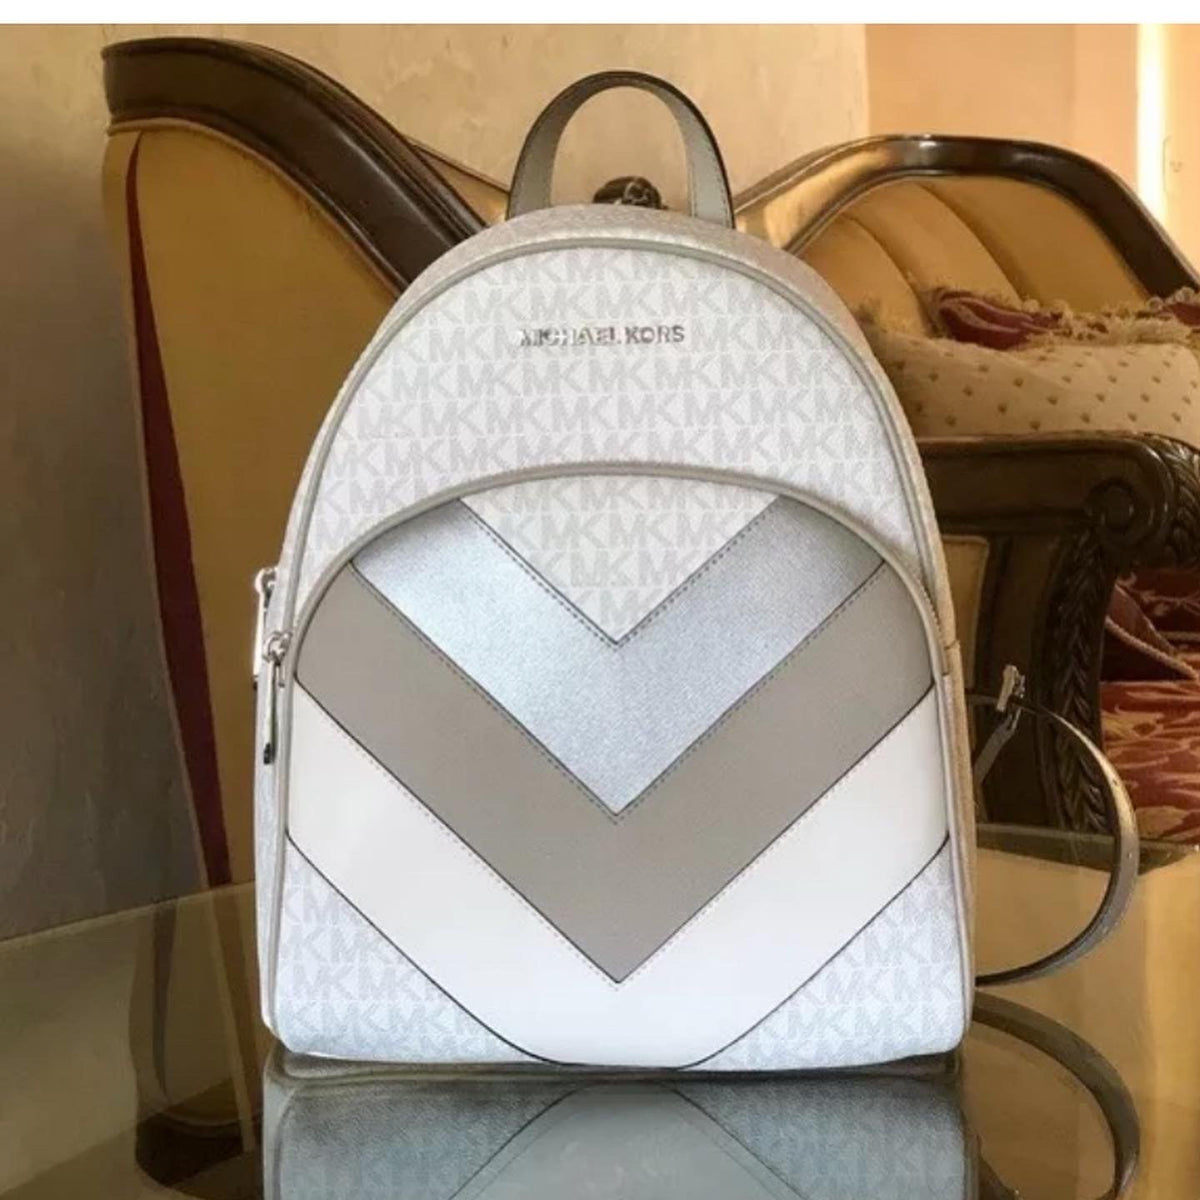 Michael Kors Medium Backpack